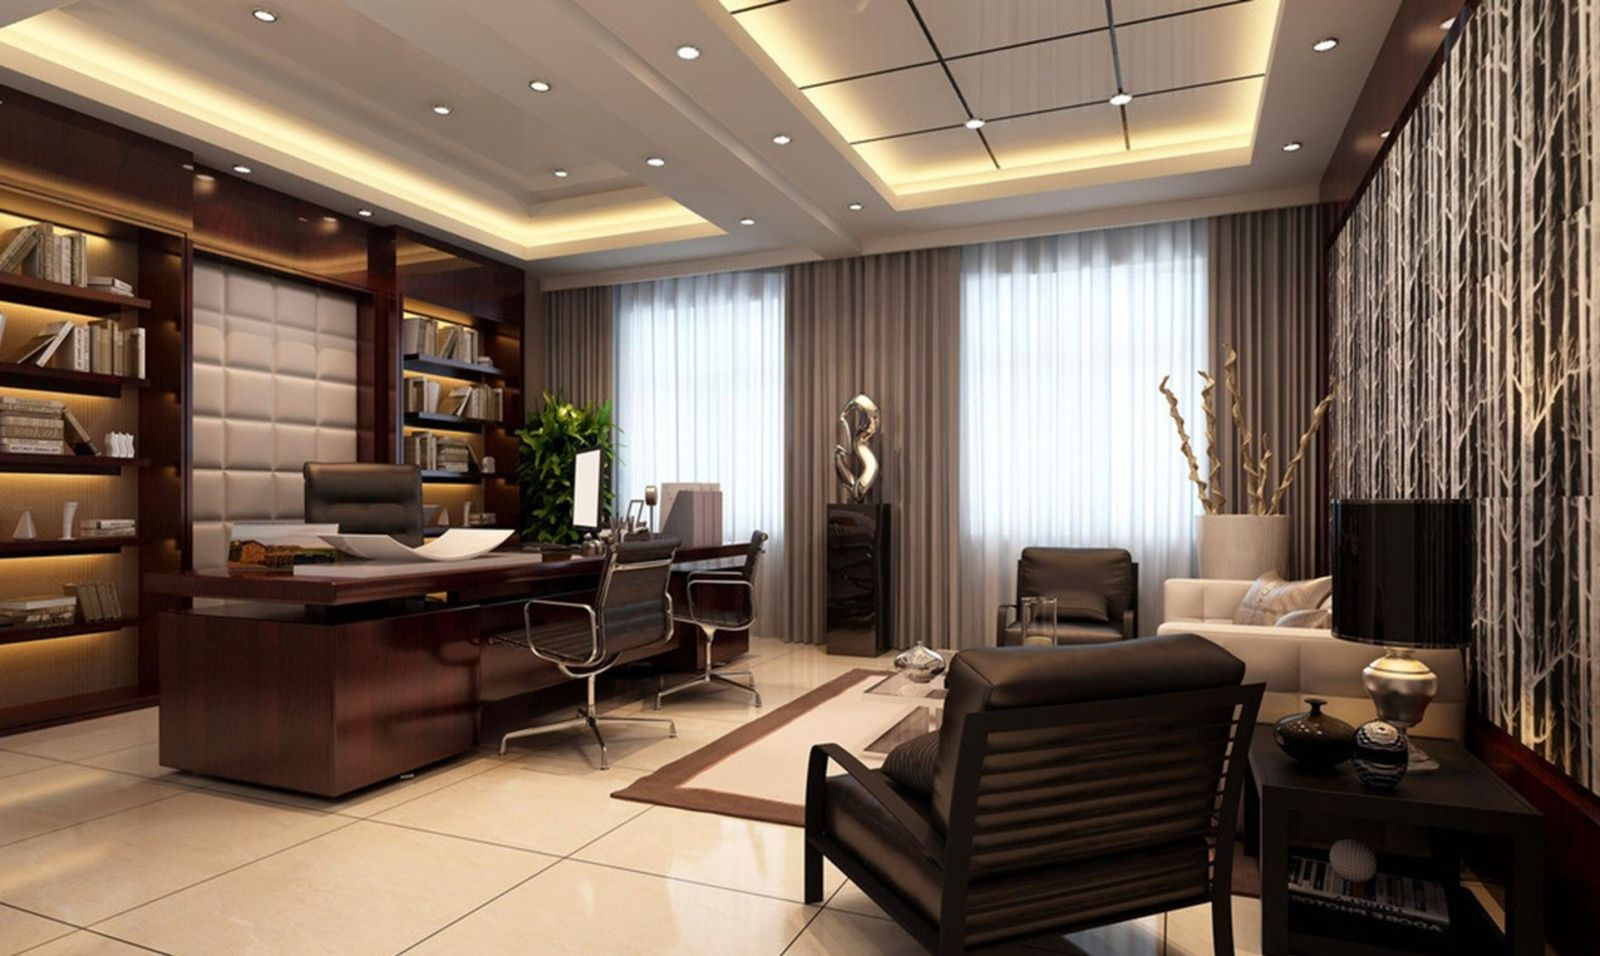 Modern ceo office interior design with executive office for Interior designs for offices ideas